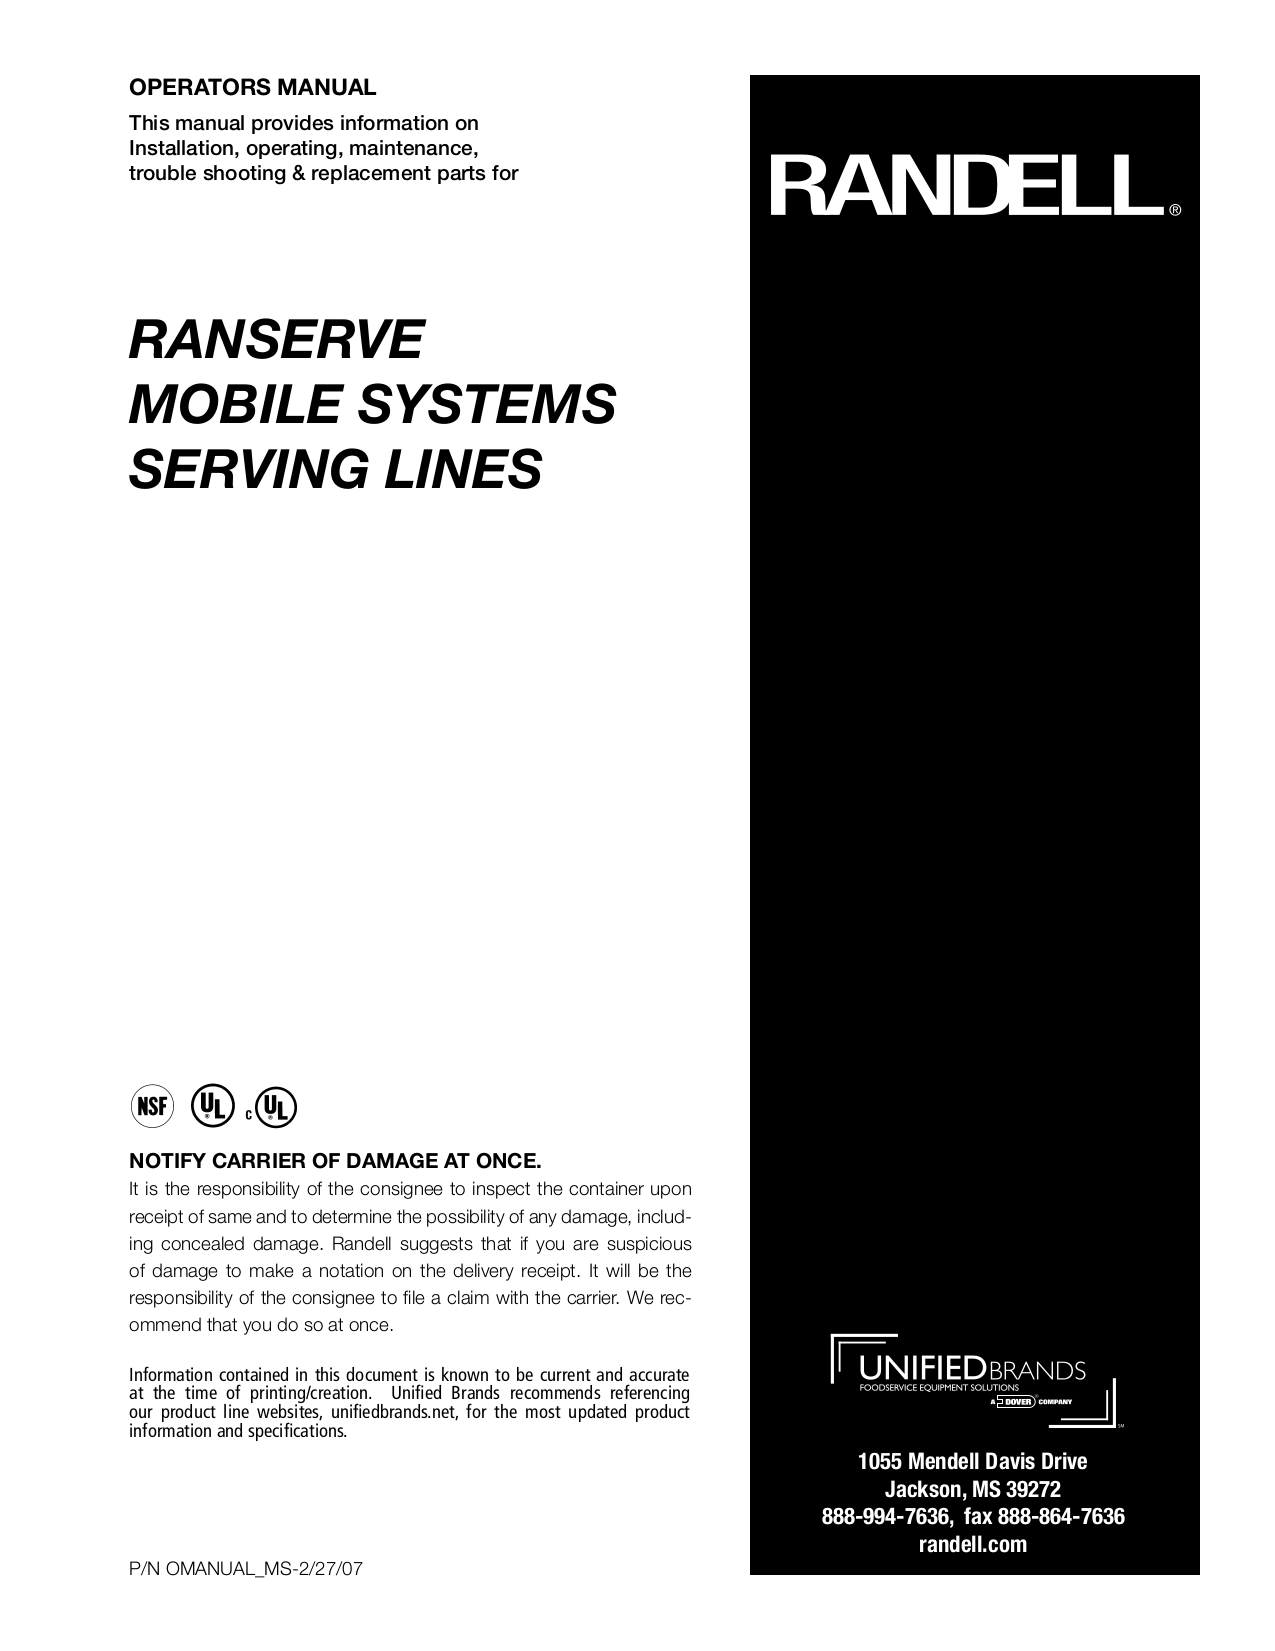 pdf for Randell Other 14G HTD-2S Food Holding Units manual